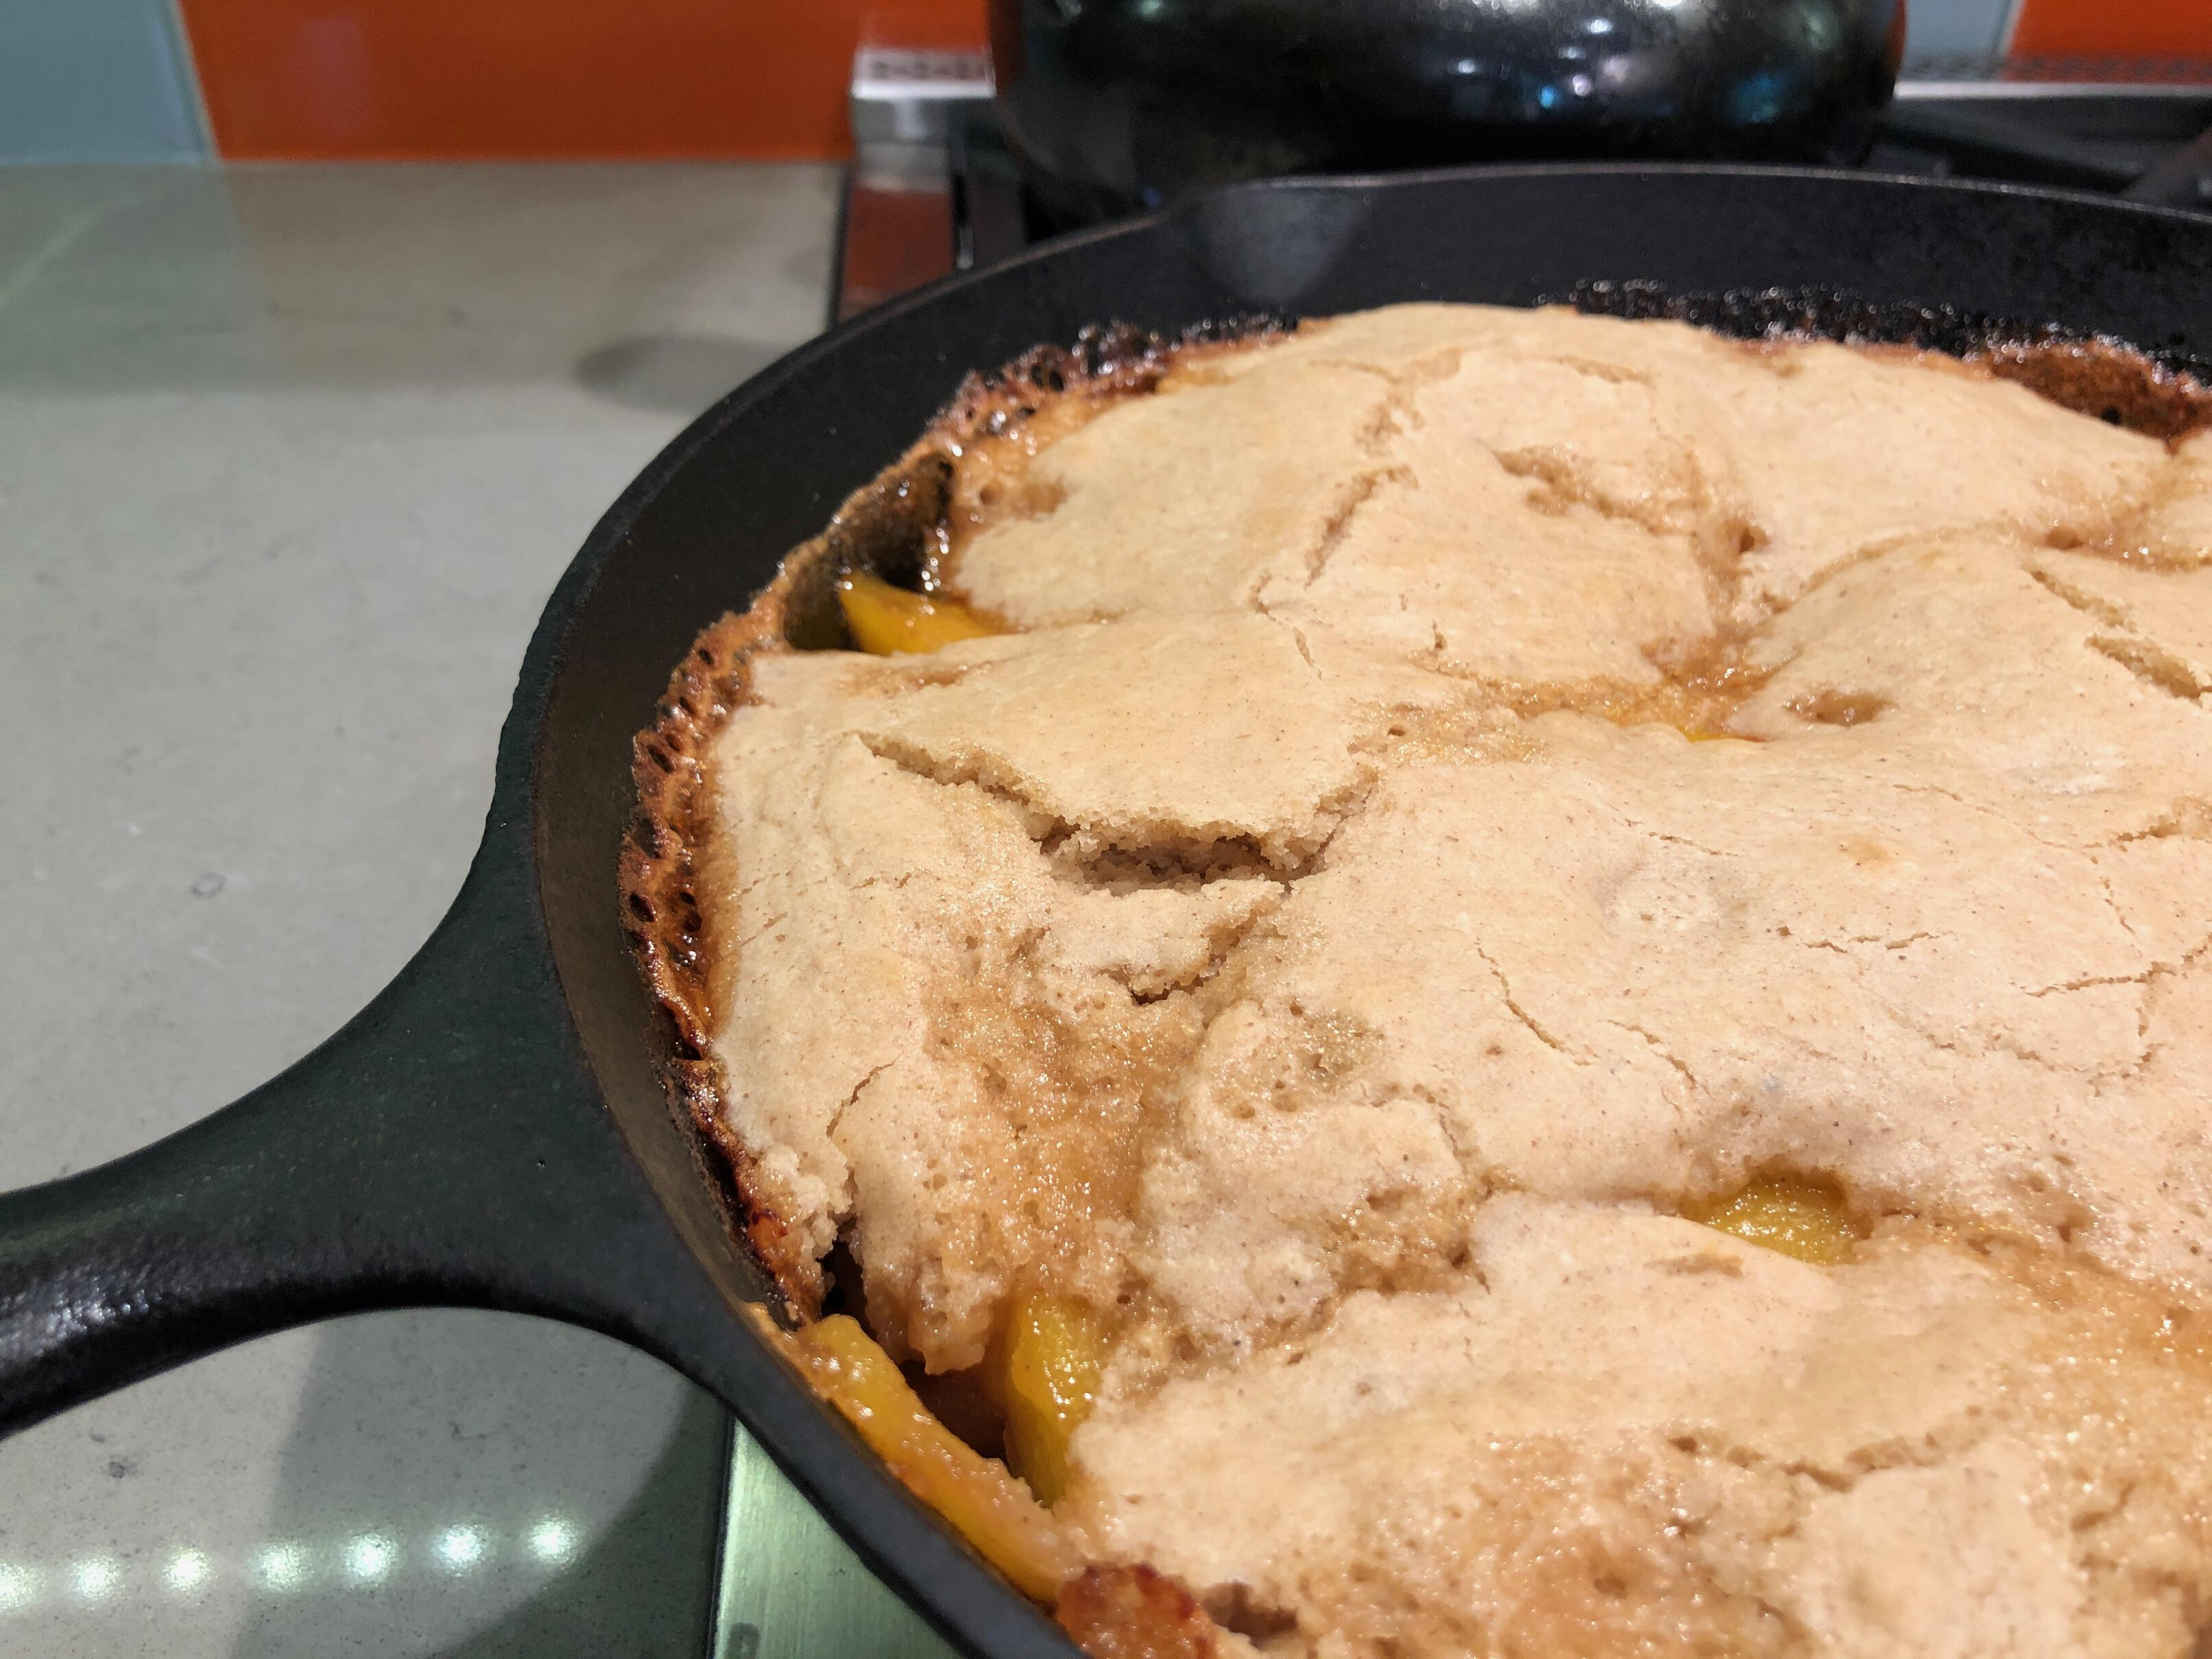 Photo of bubbling peach cobbler in a cast iron pan.